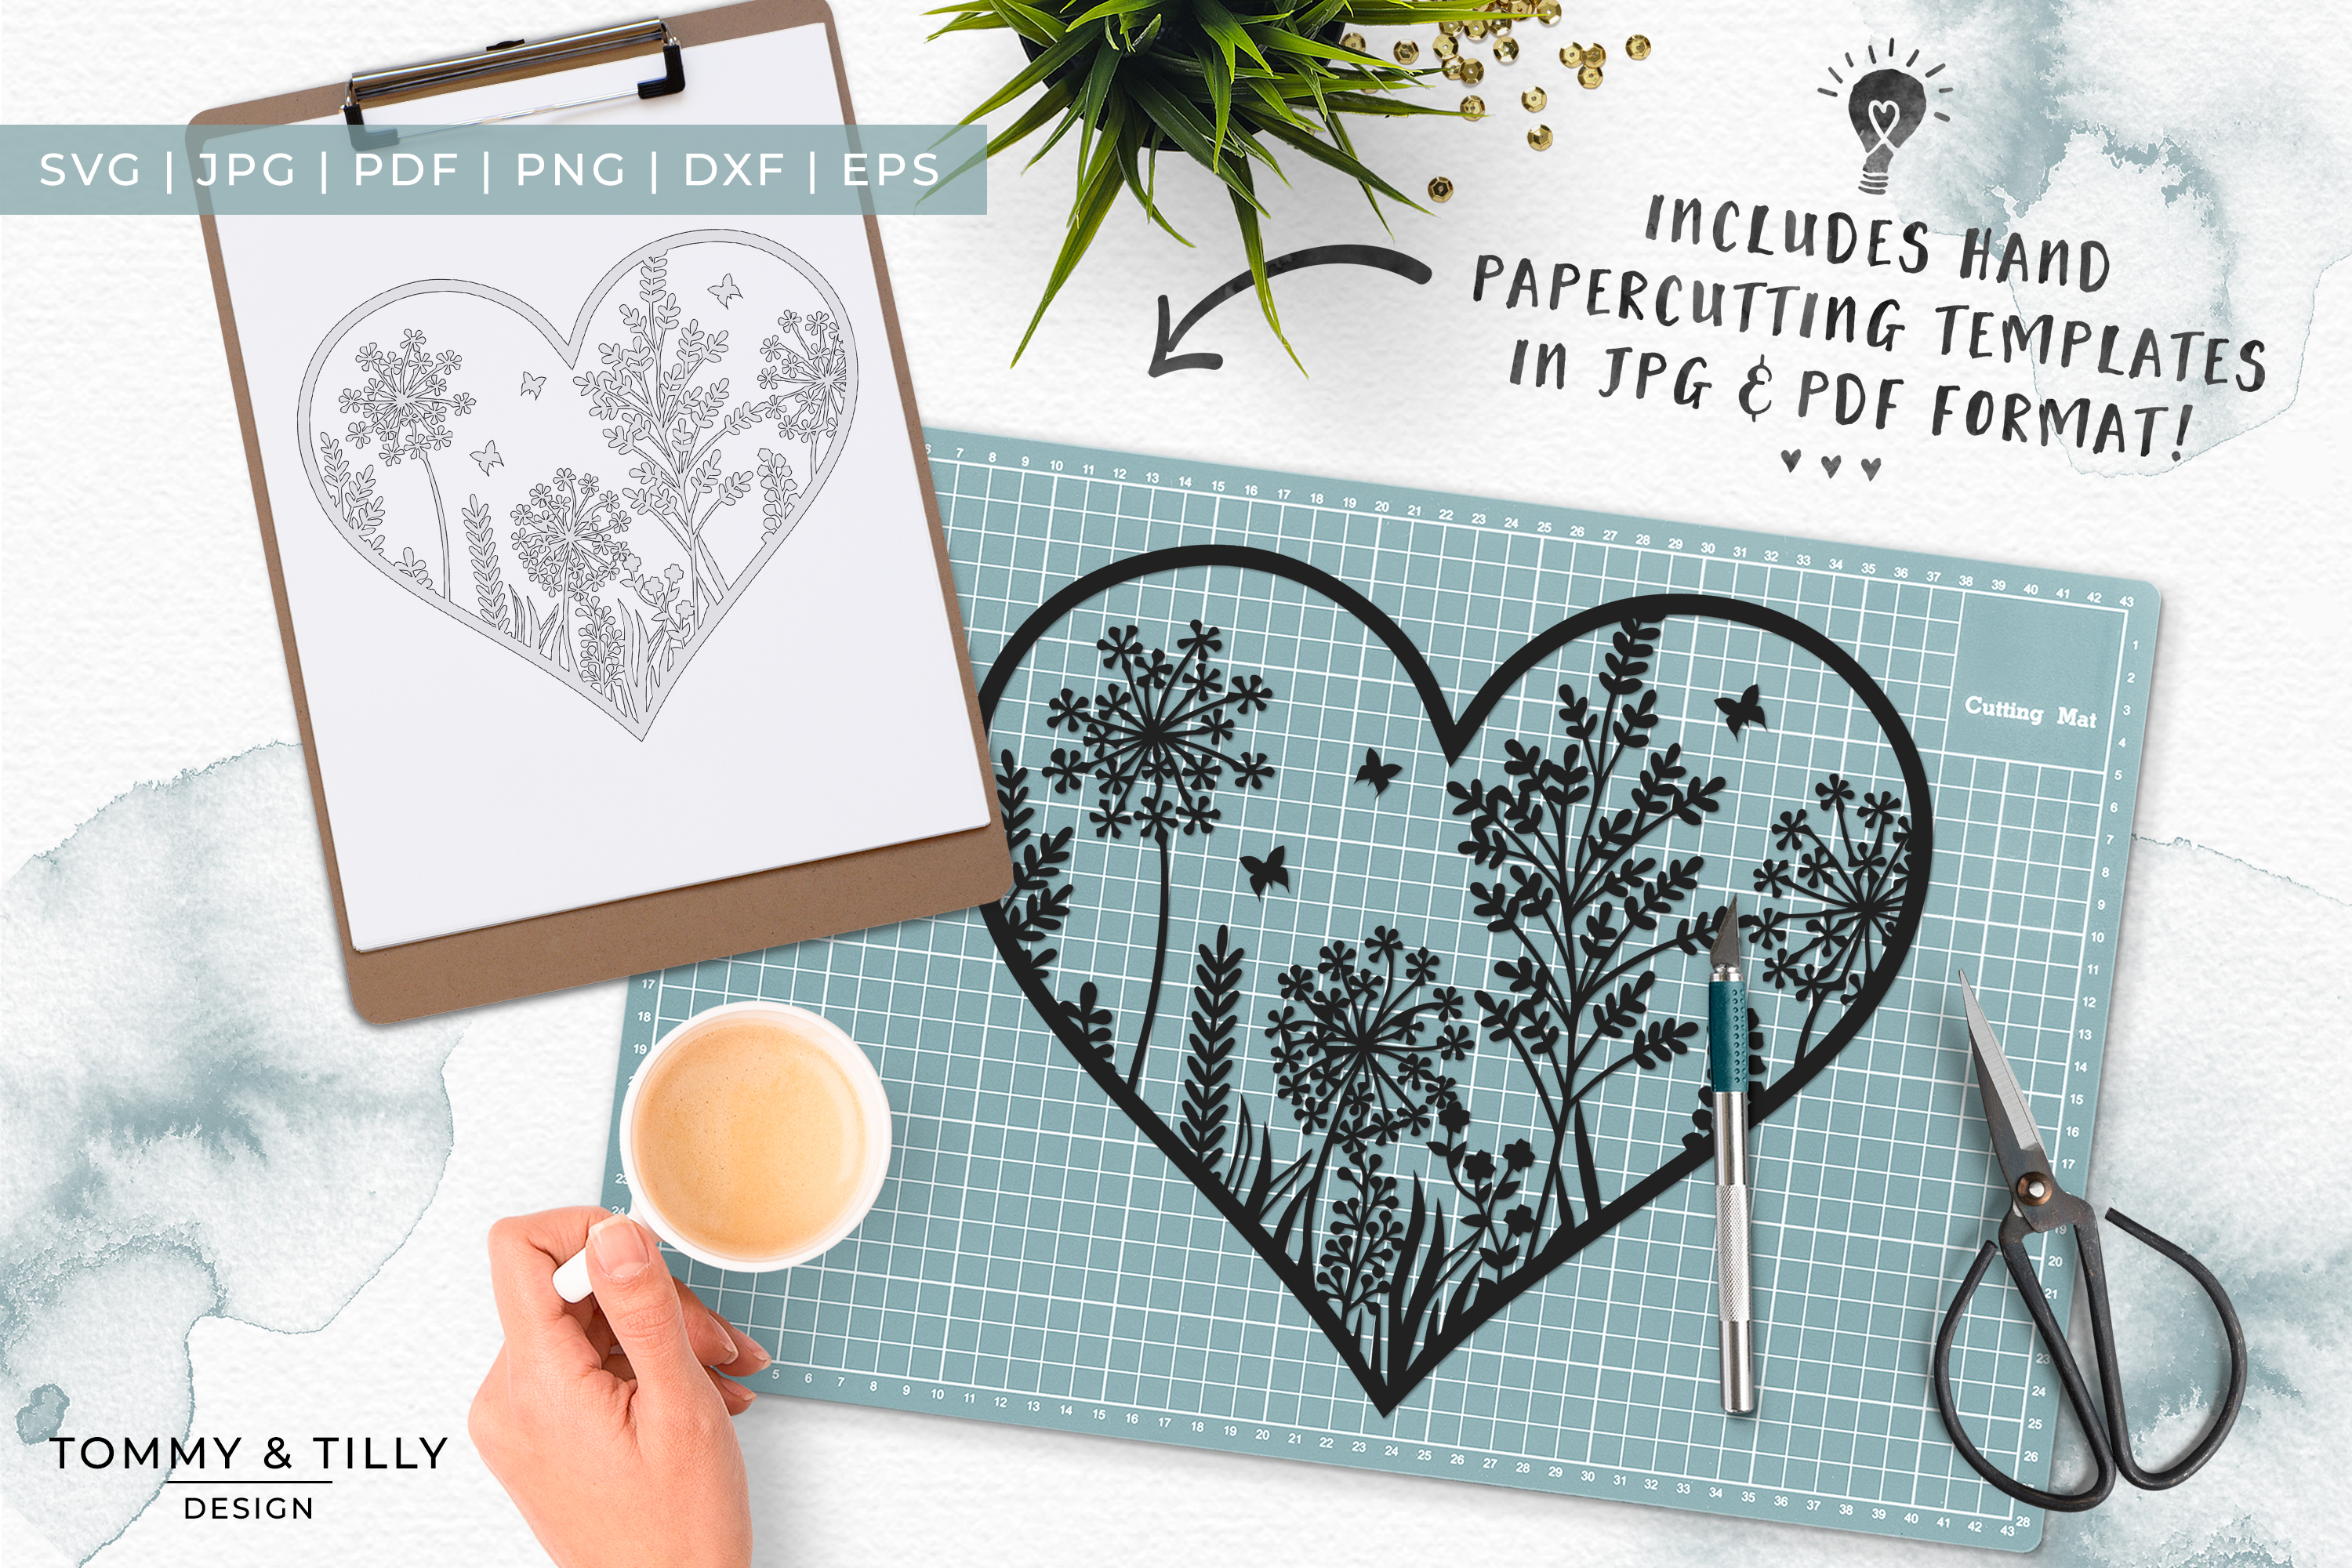 Meadow Heart - Papercut Template SVG EPS DXF PNG PDF JPG example image 3